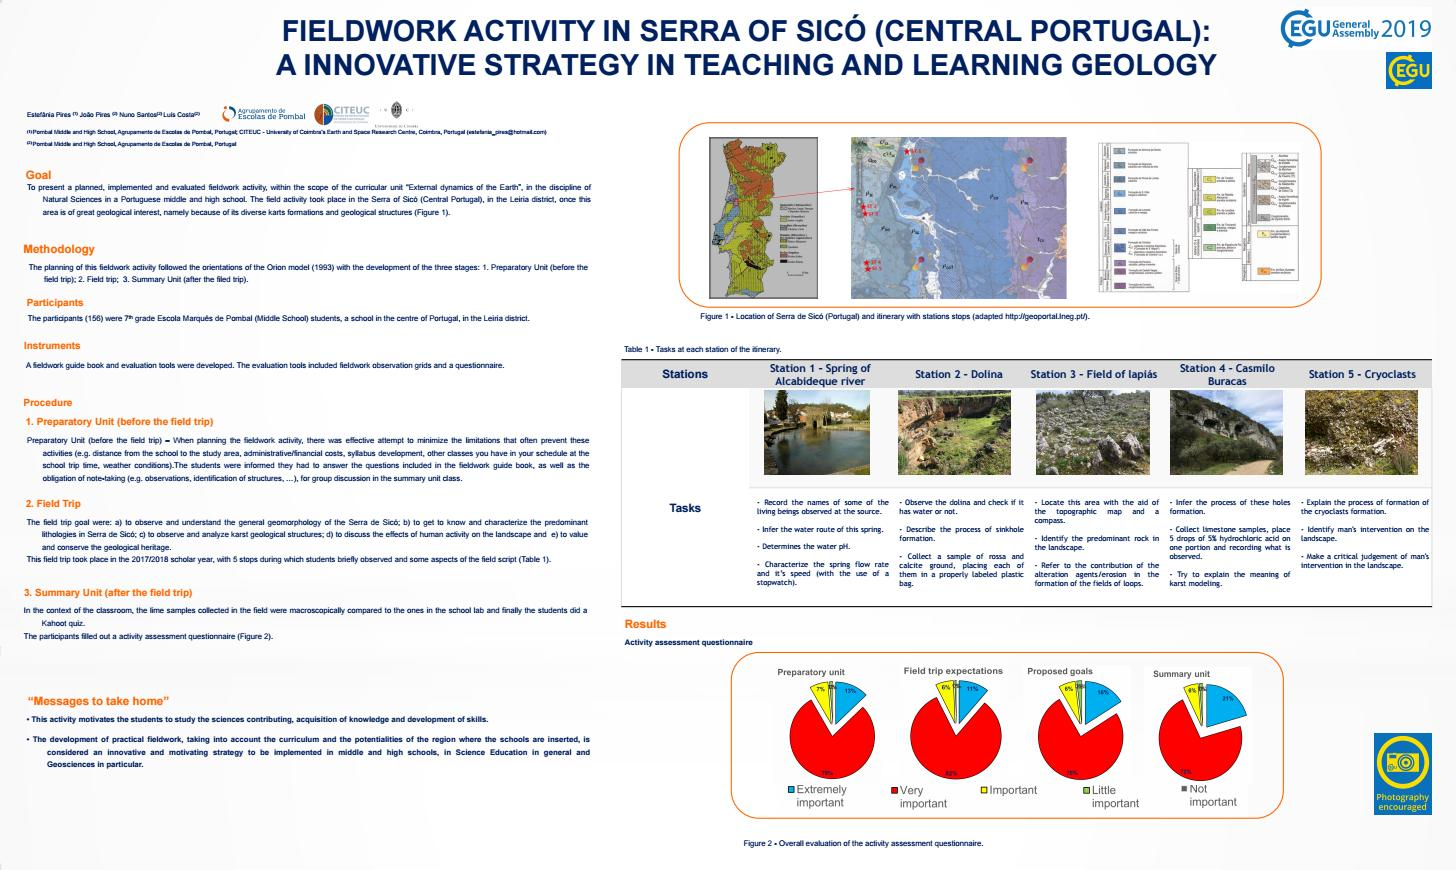 FIELDWORK ACTIVITY IN SERRA OF SICÓ (CENTRAL PORTUGAL): A